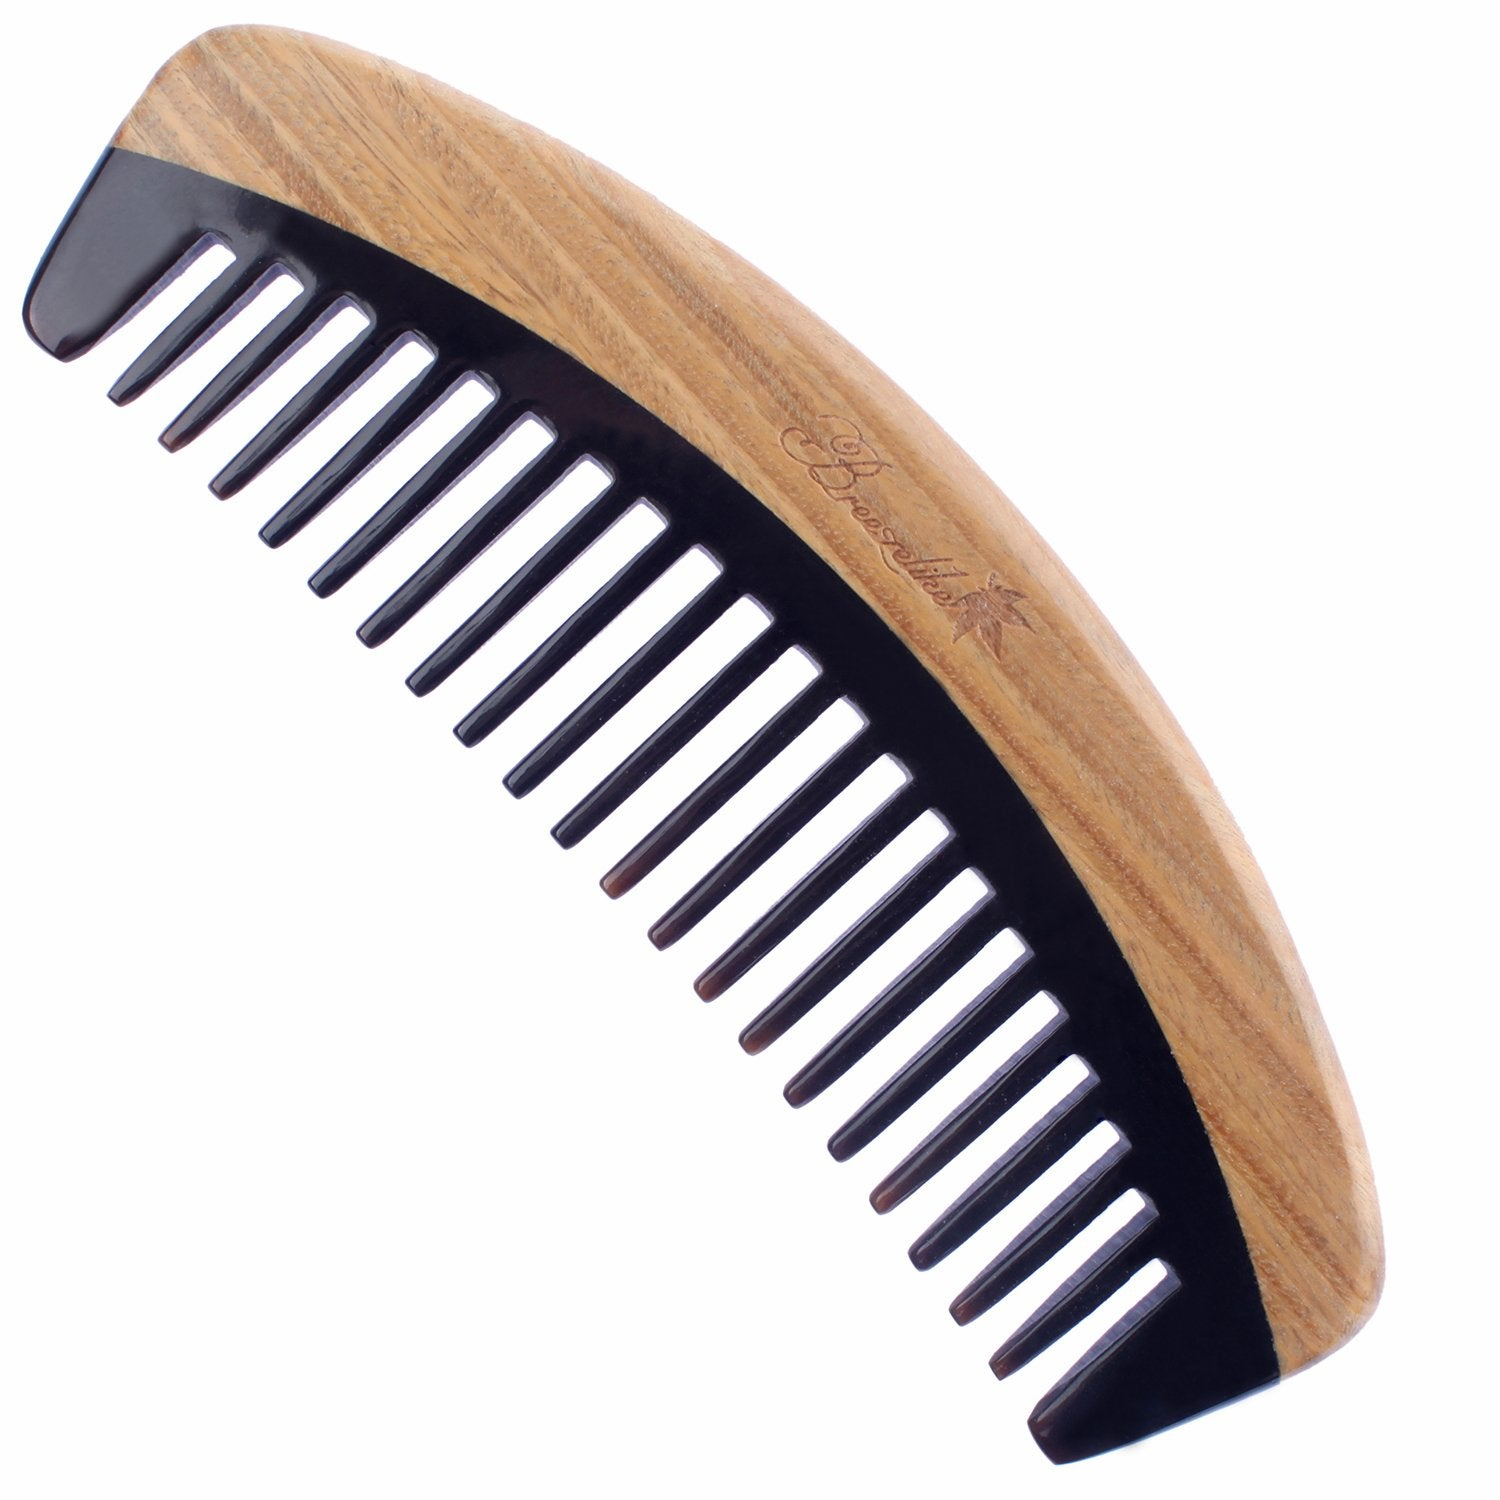 Breezelike Hair Comb - Wide Tooth Wooden Detangling Comb for Curly Hair - No Static Sandalwood Buffalo Horn Comb for Men and Women